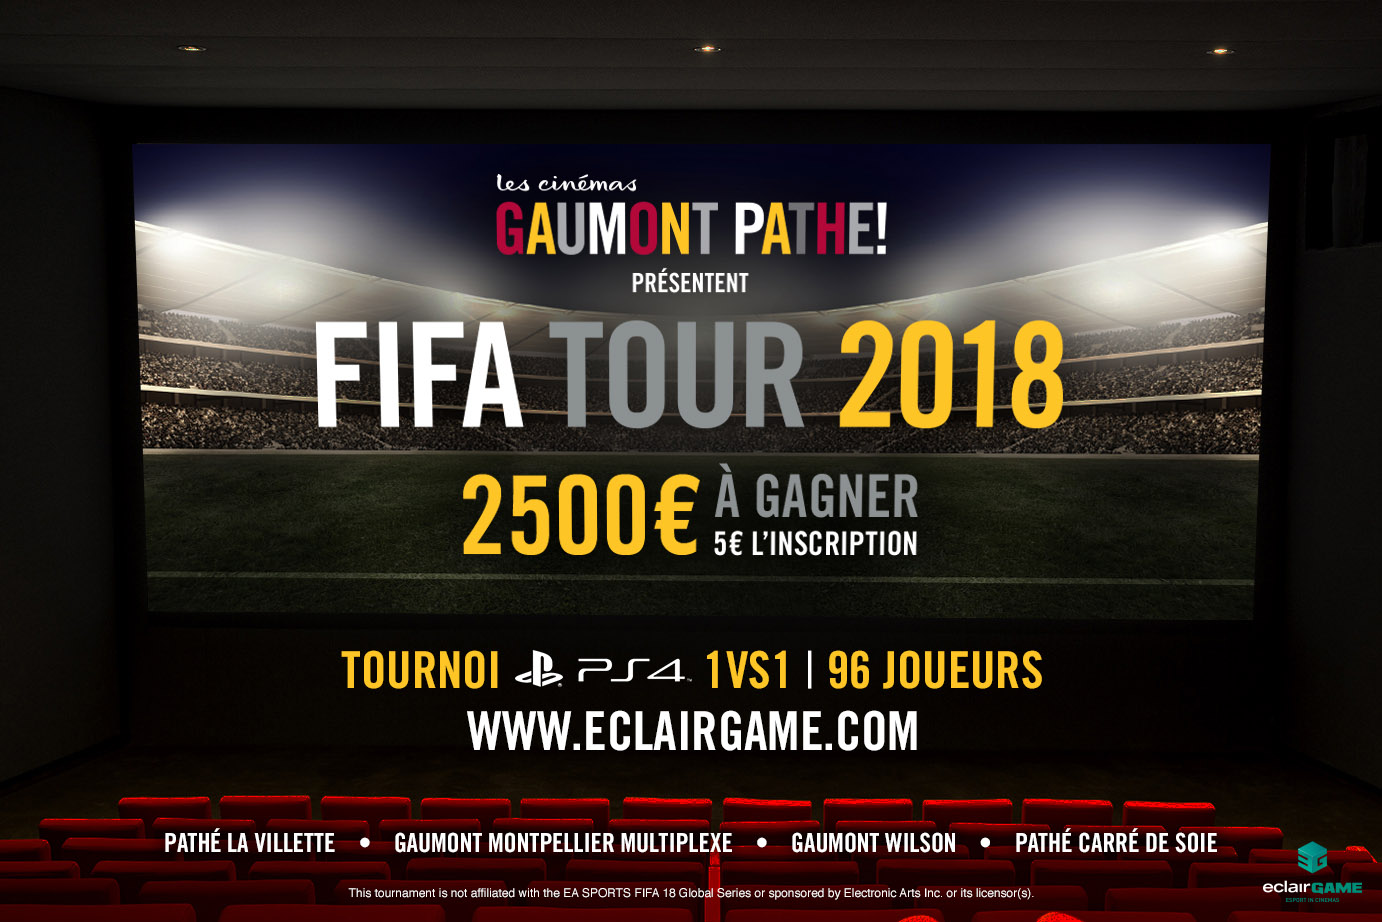 EclairGame and Les Cinémas Gaumont Pathé strengthen their eSport partnership with Fifa Tour 2018